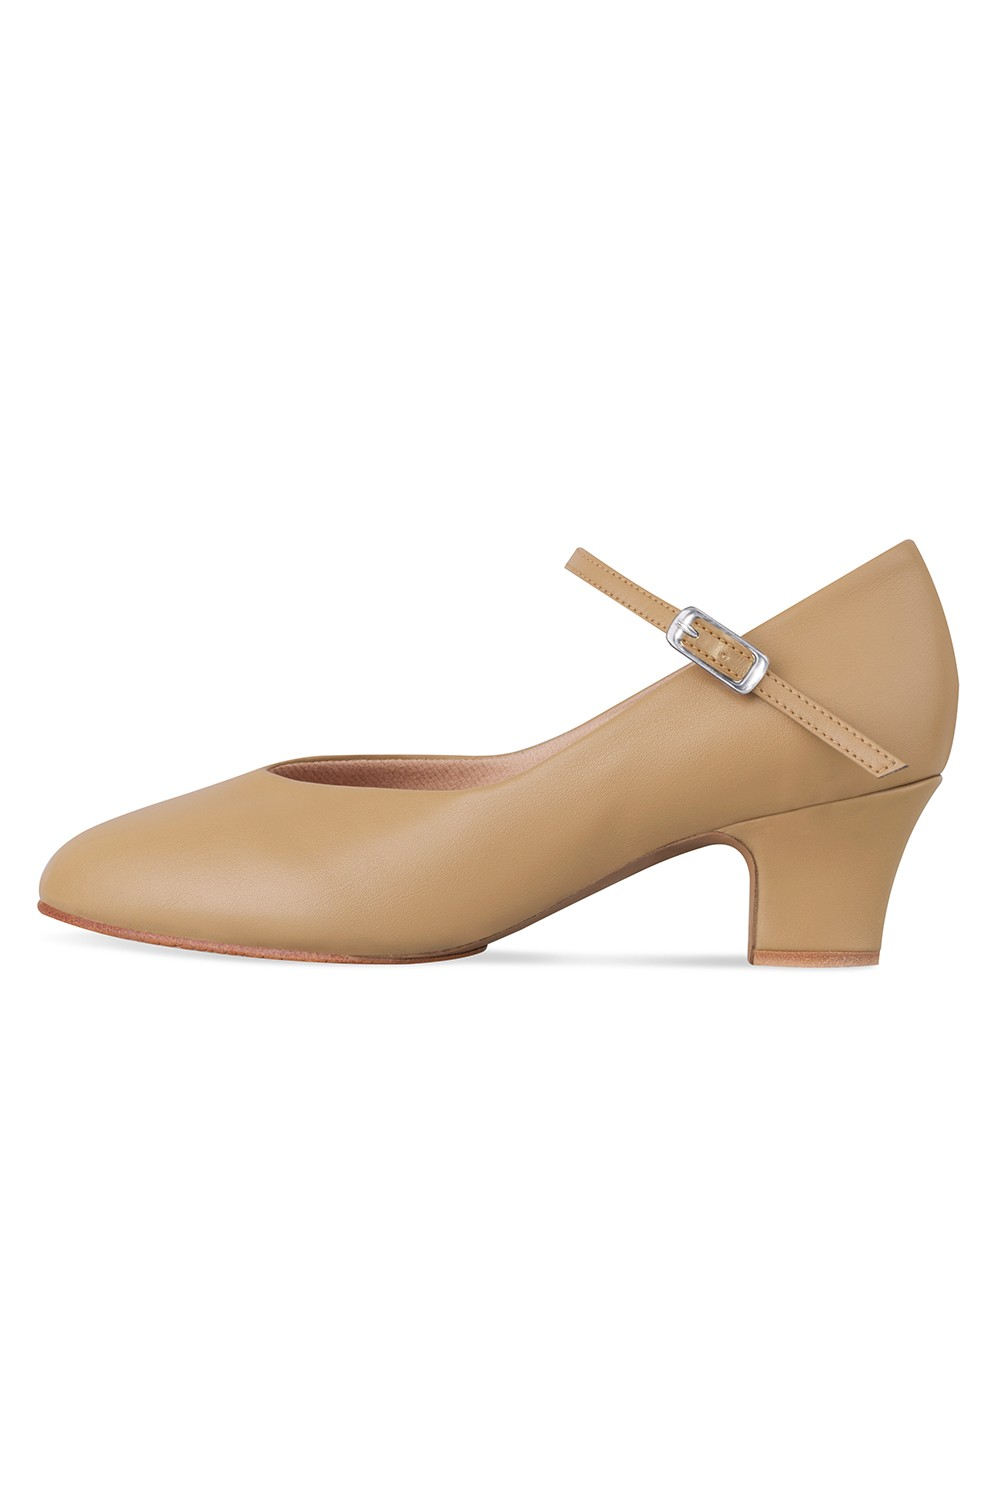 Broadway - Bassa Women's Character Shoes